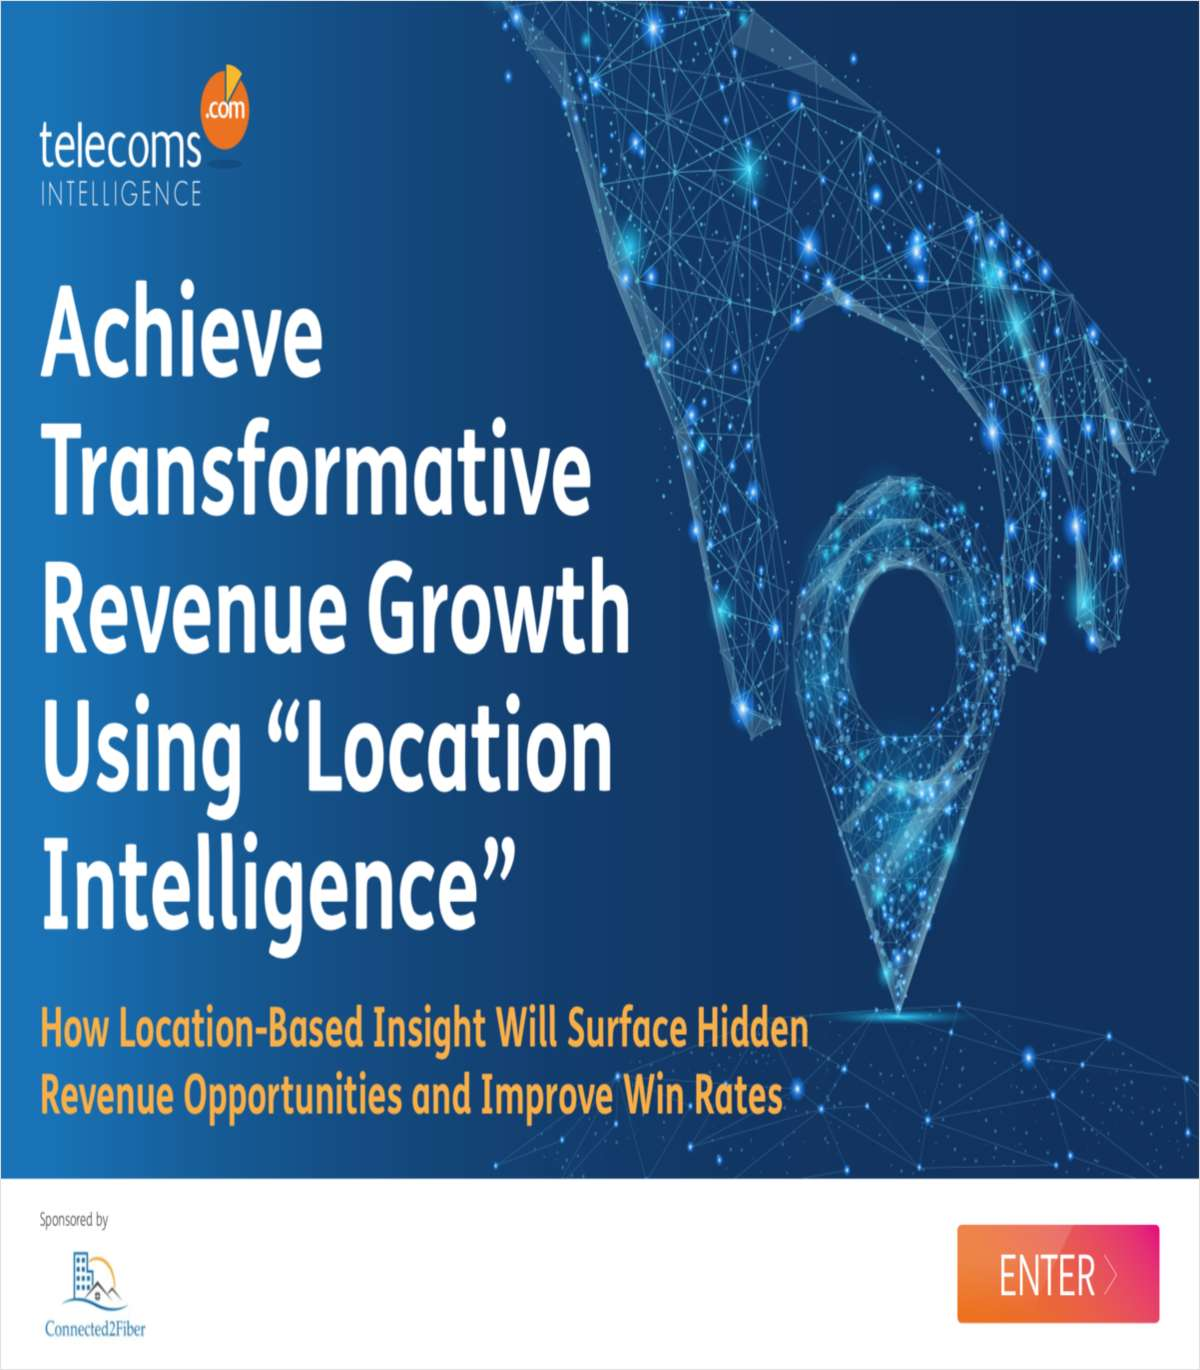 Achieve Transformative Revenue Growth Using 'Location Intelligence'